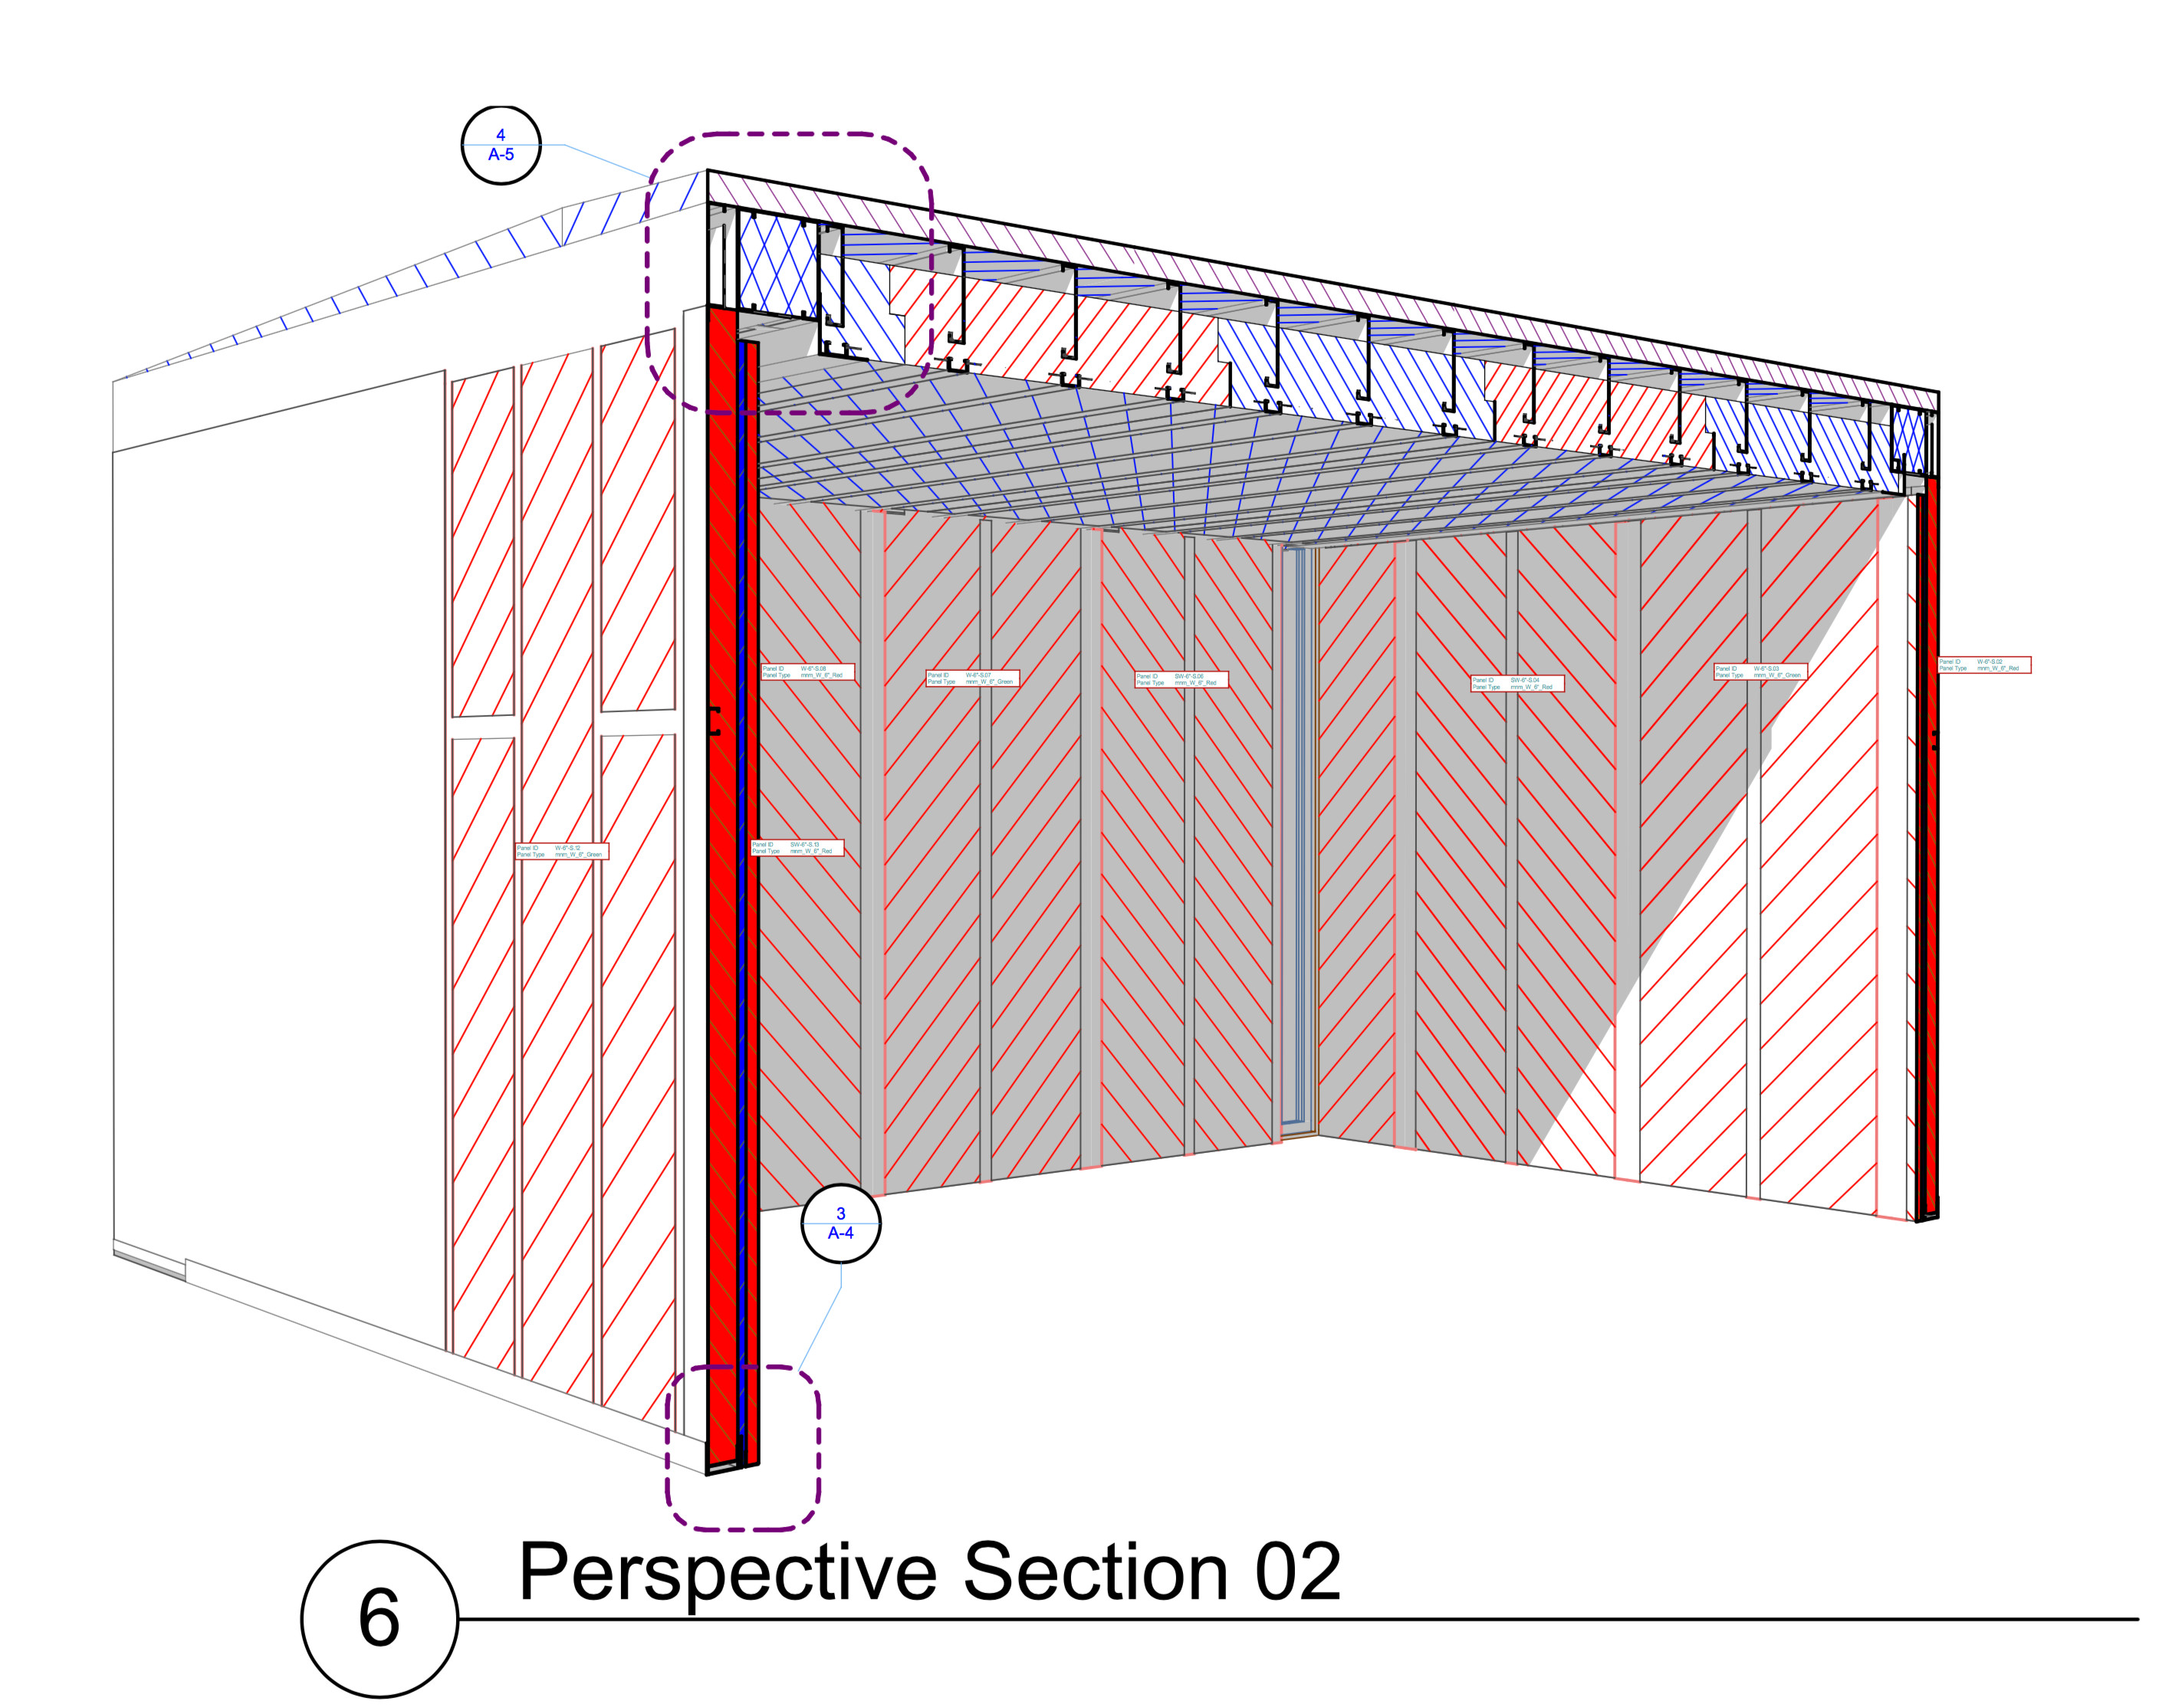 Perspective Section of shed overall, with wall-section level detail in cut elements, and a detail callout for the wall-ceiling assembly connection.